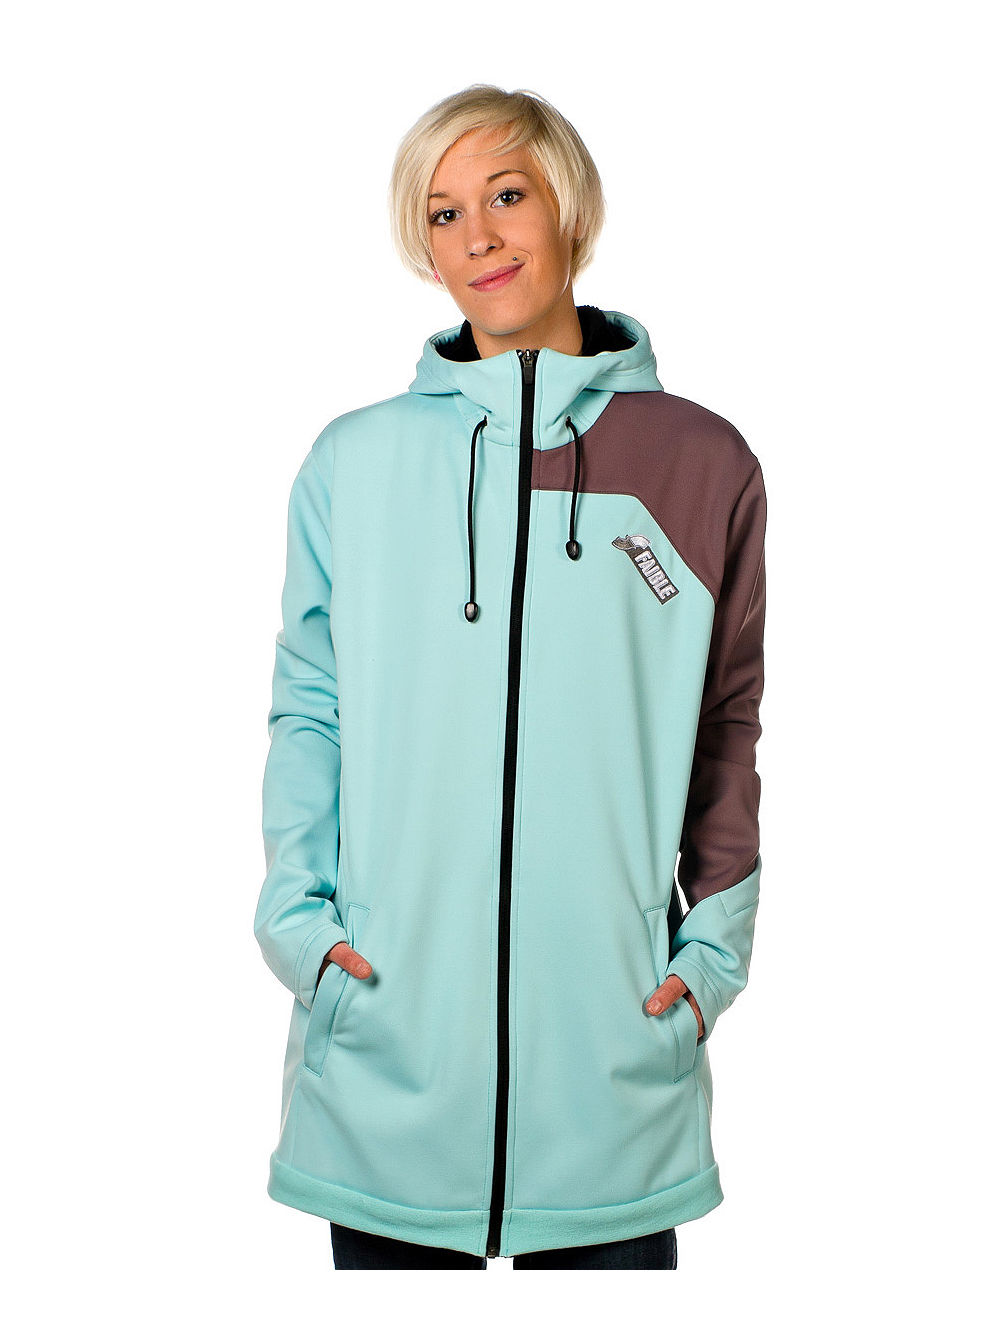 Sunnyside-Up Softshell Women